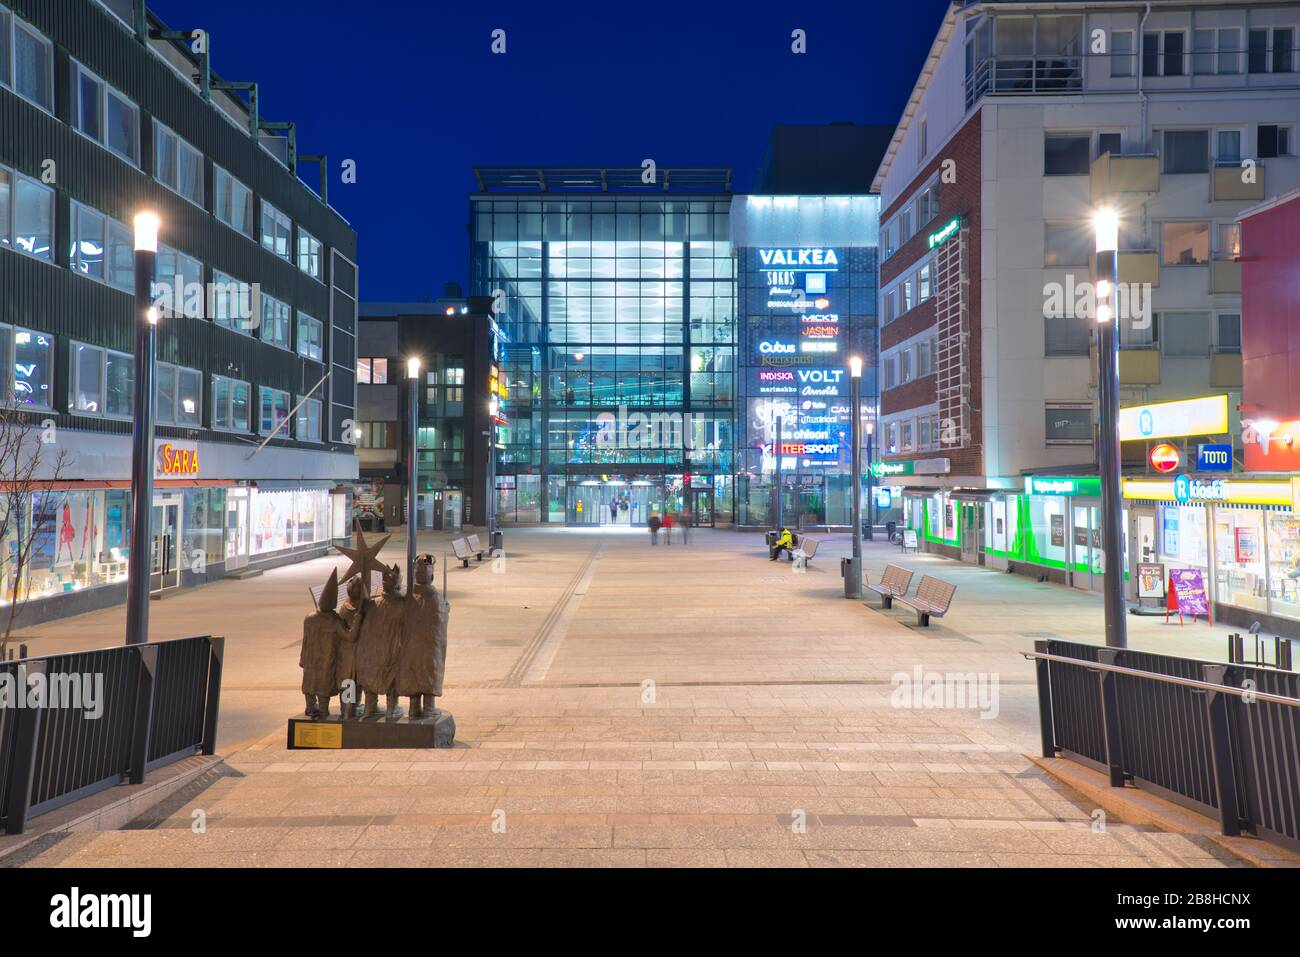 Valkea Shopping Center in Oulu, Finland Stock Photo